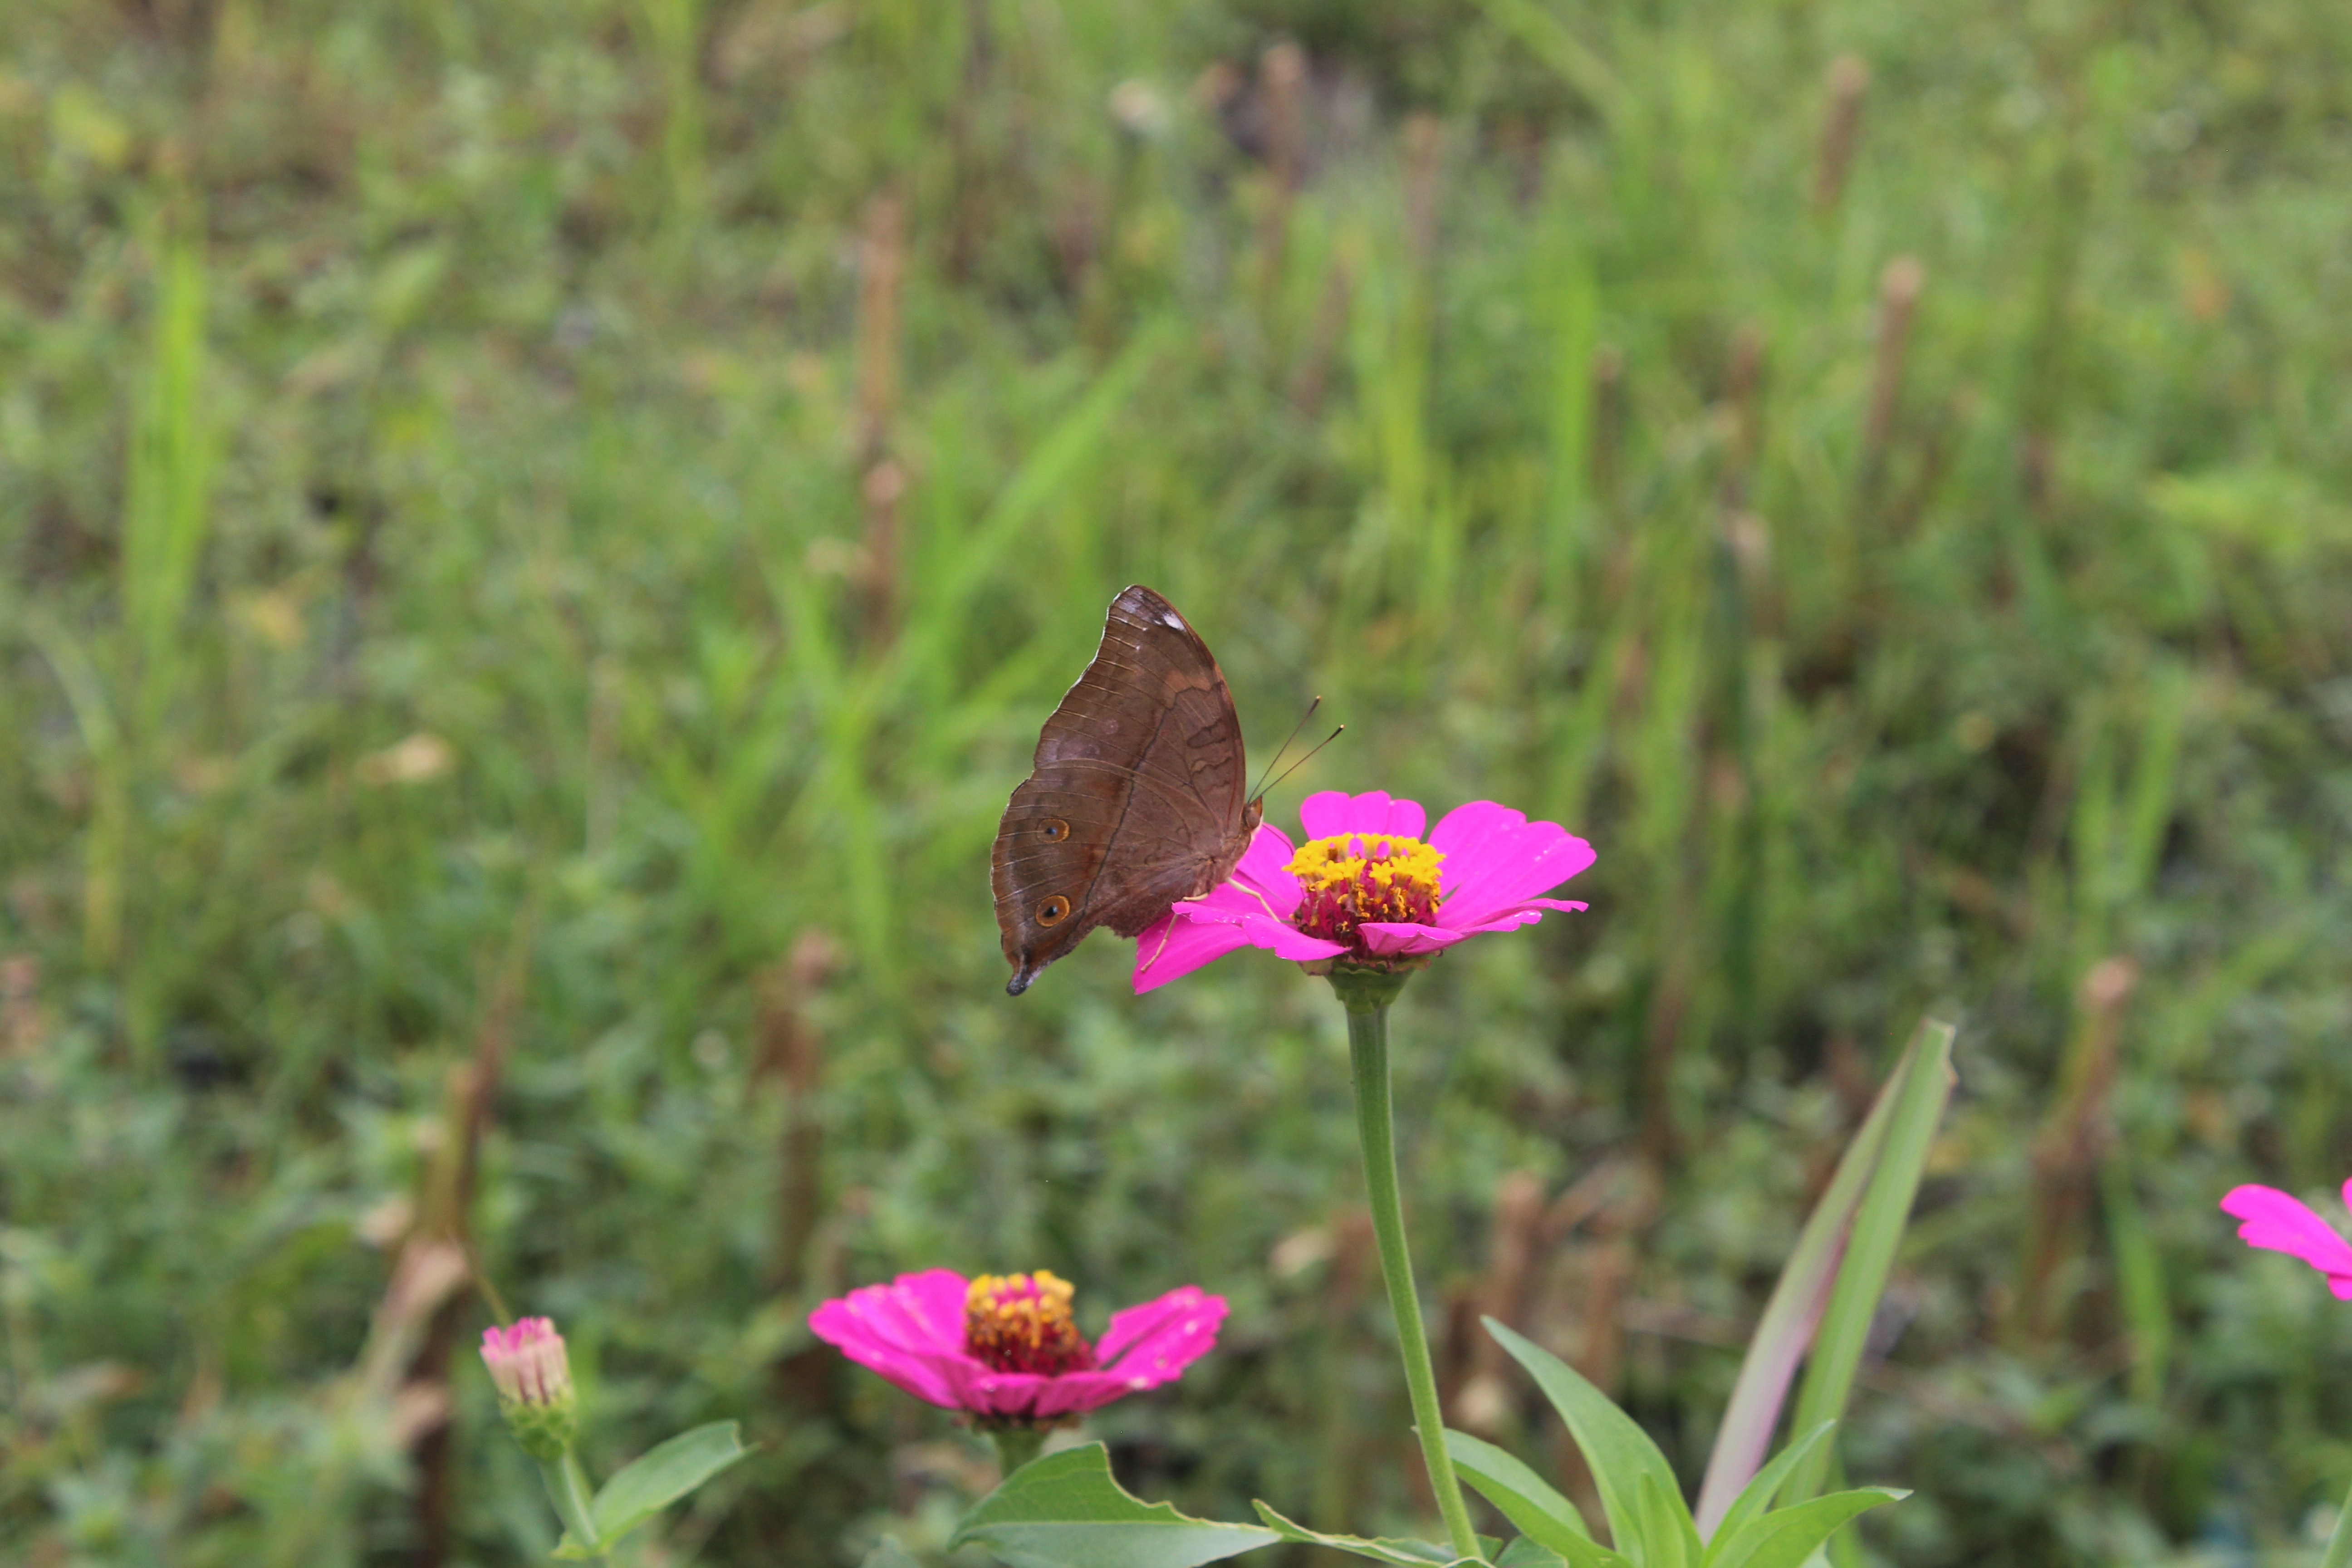 Butterfly on magenta flower